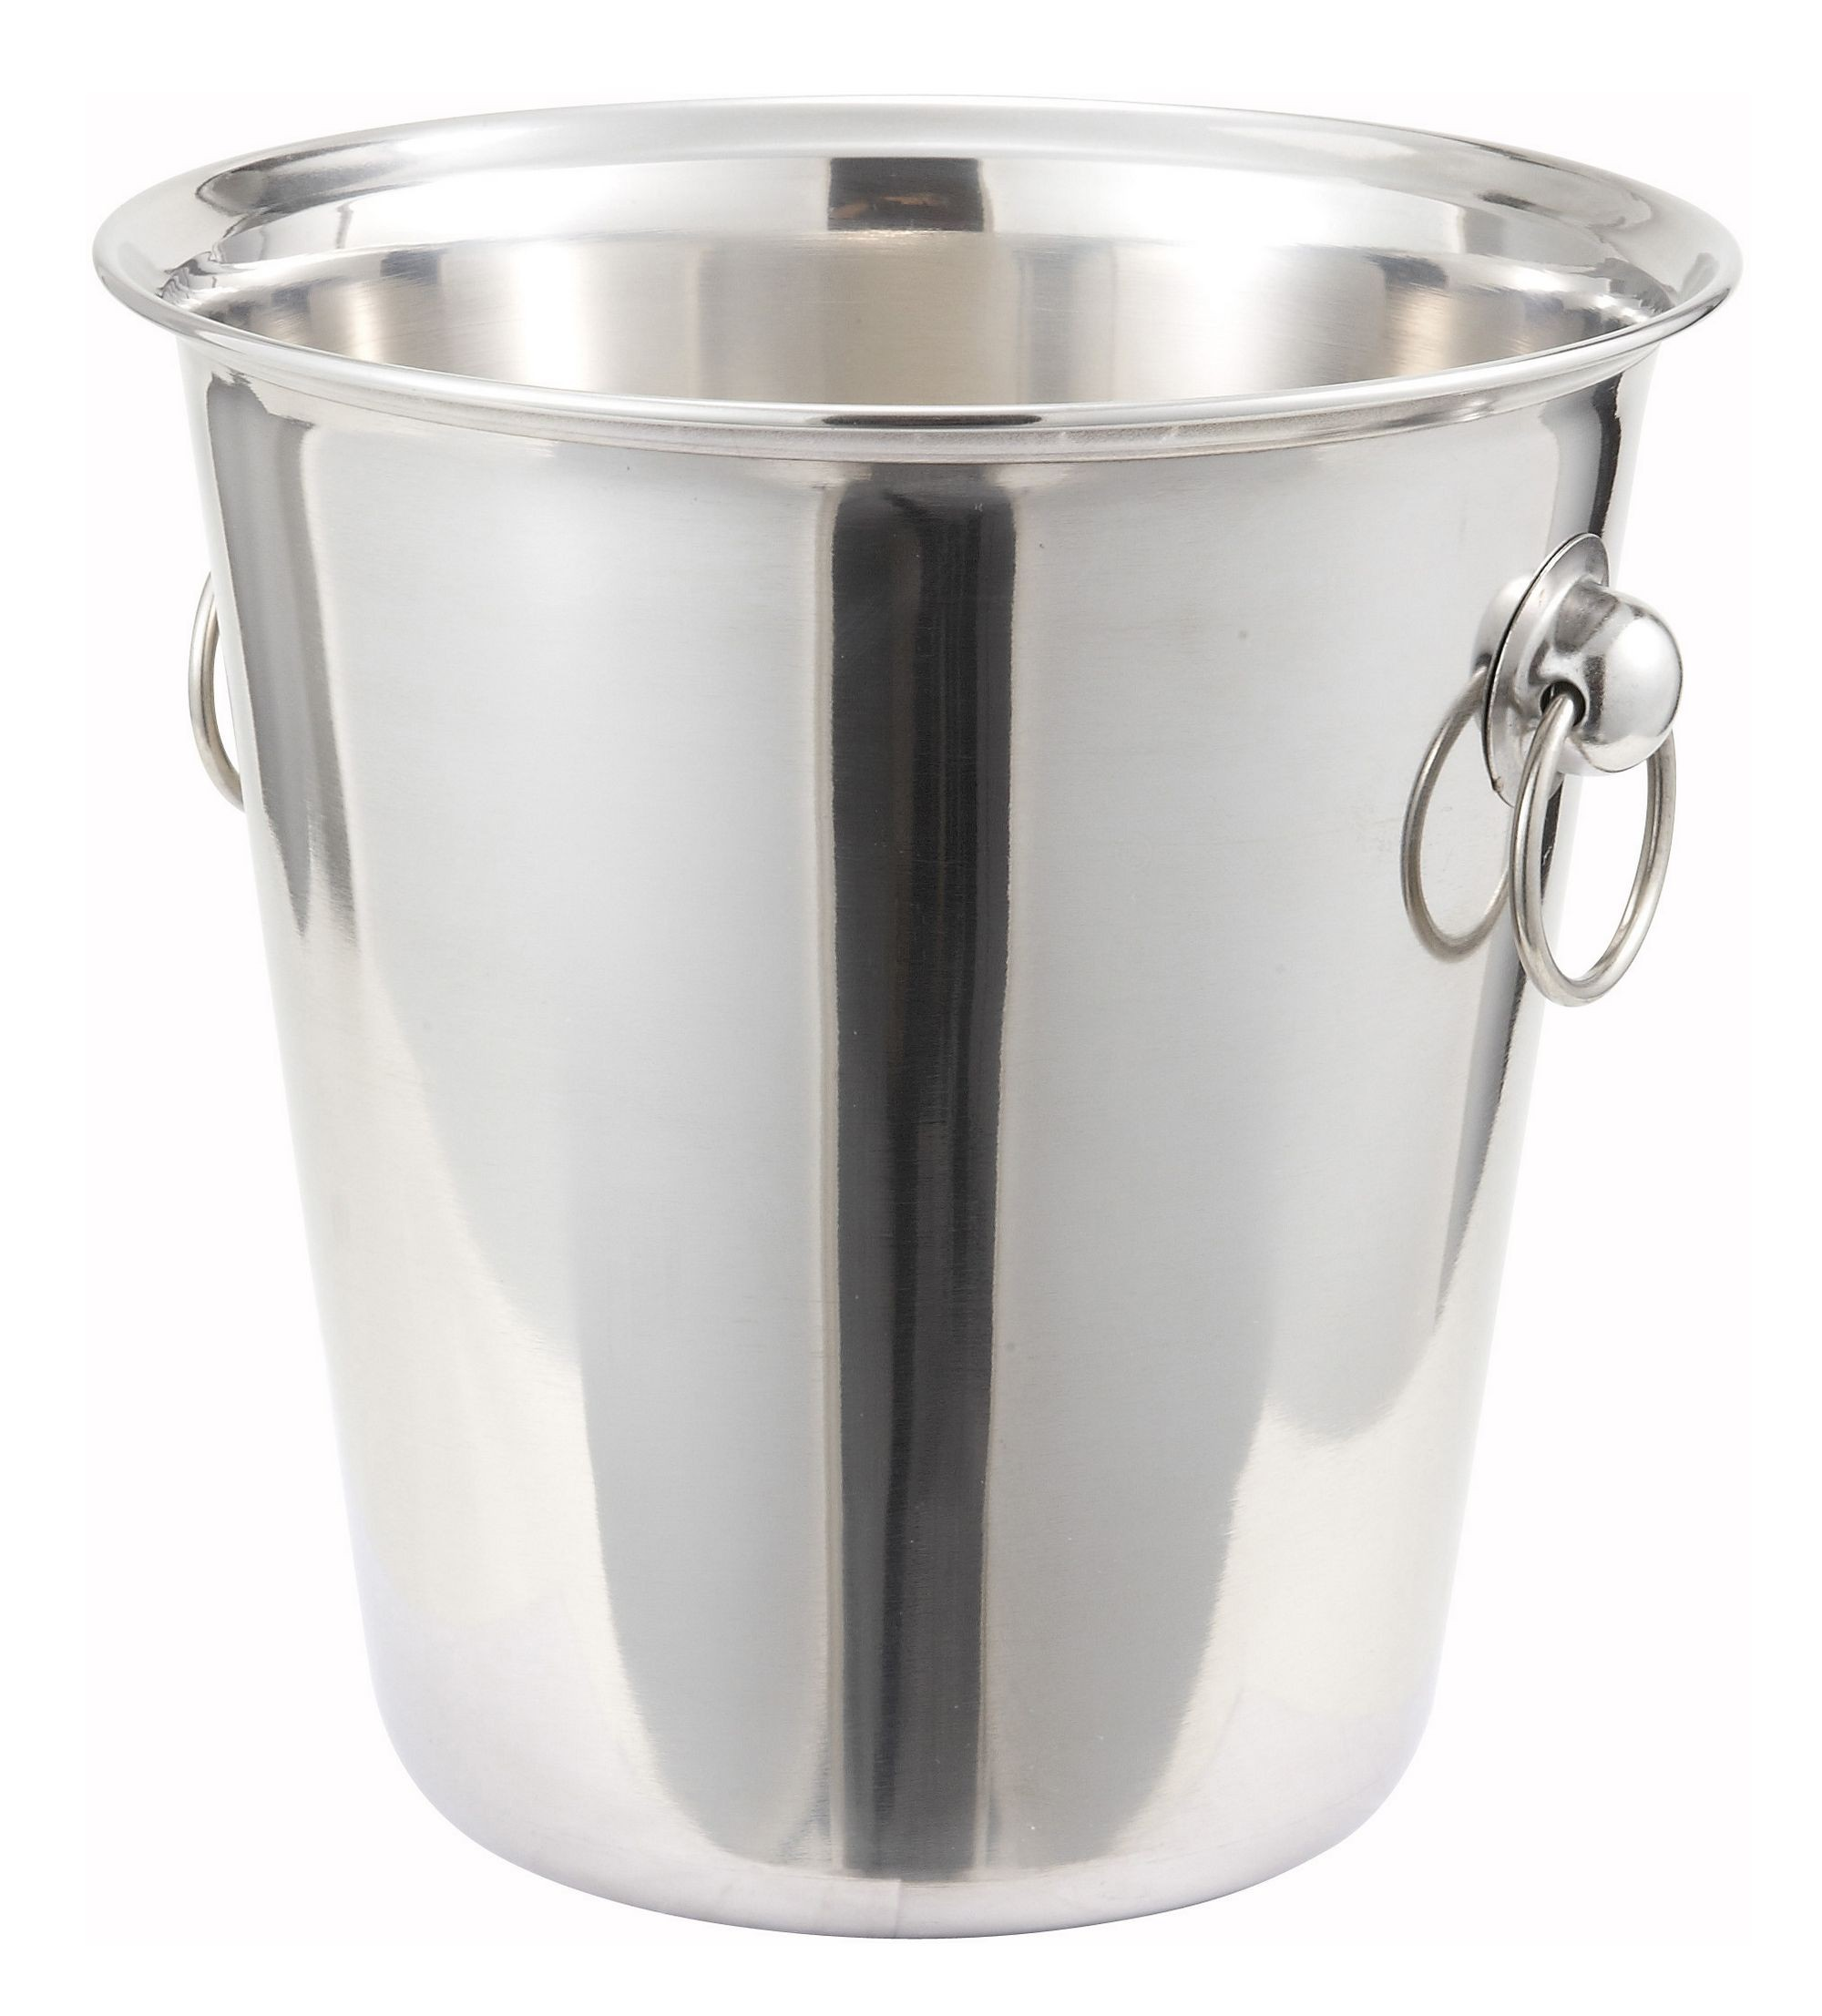 Stainless Steel 4-Quart Wine Bucket